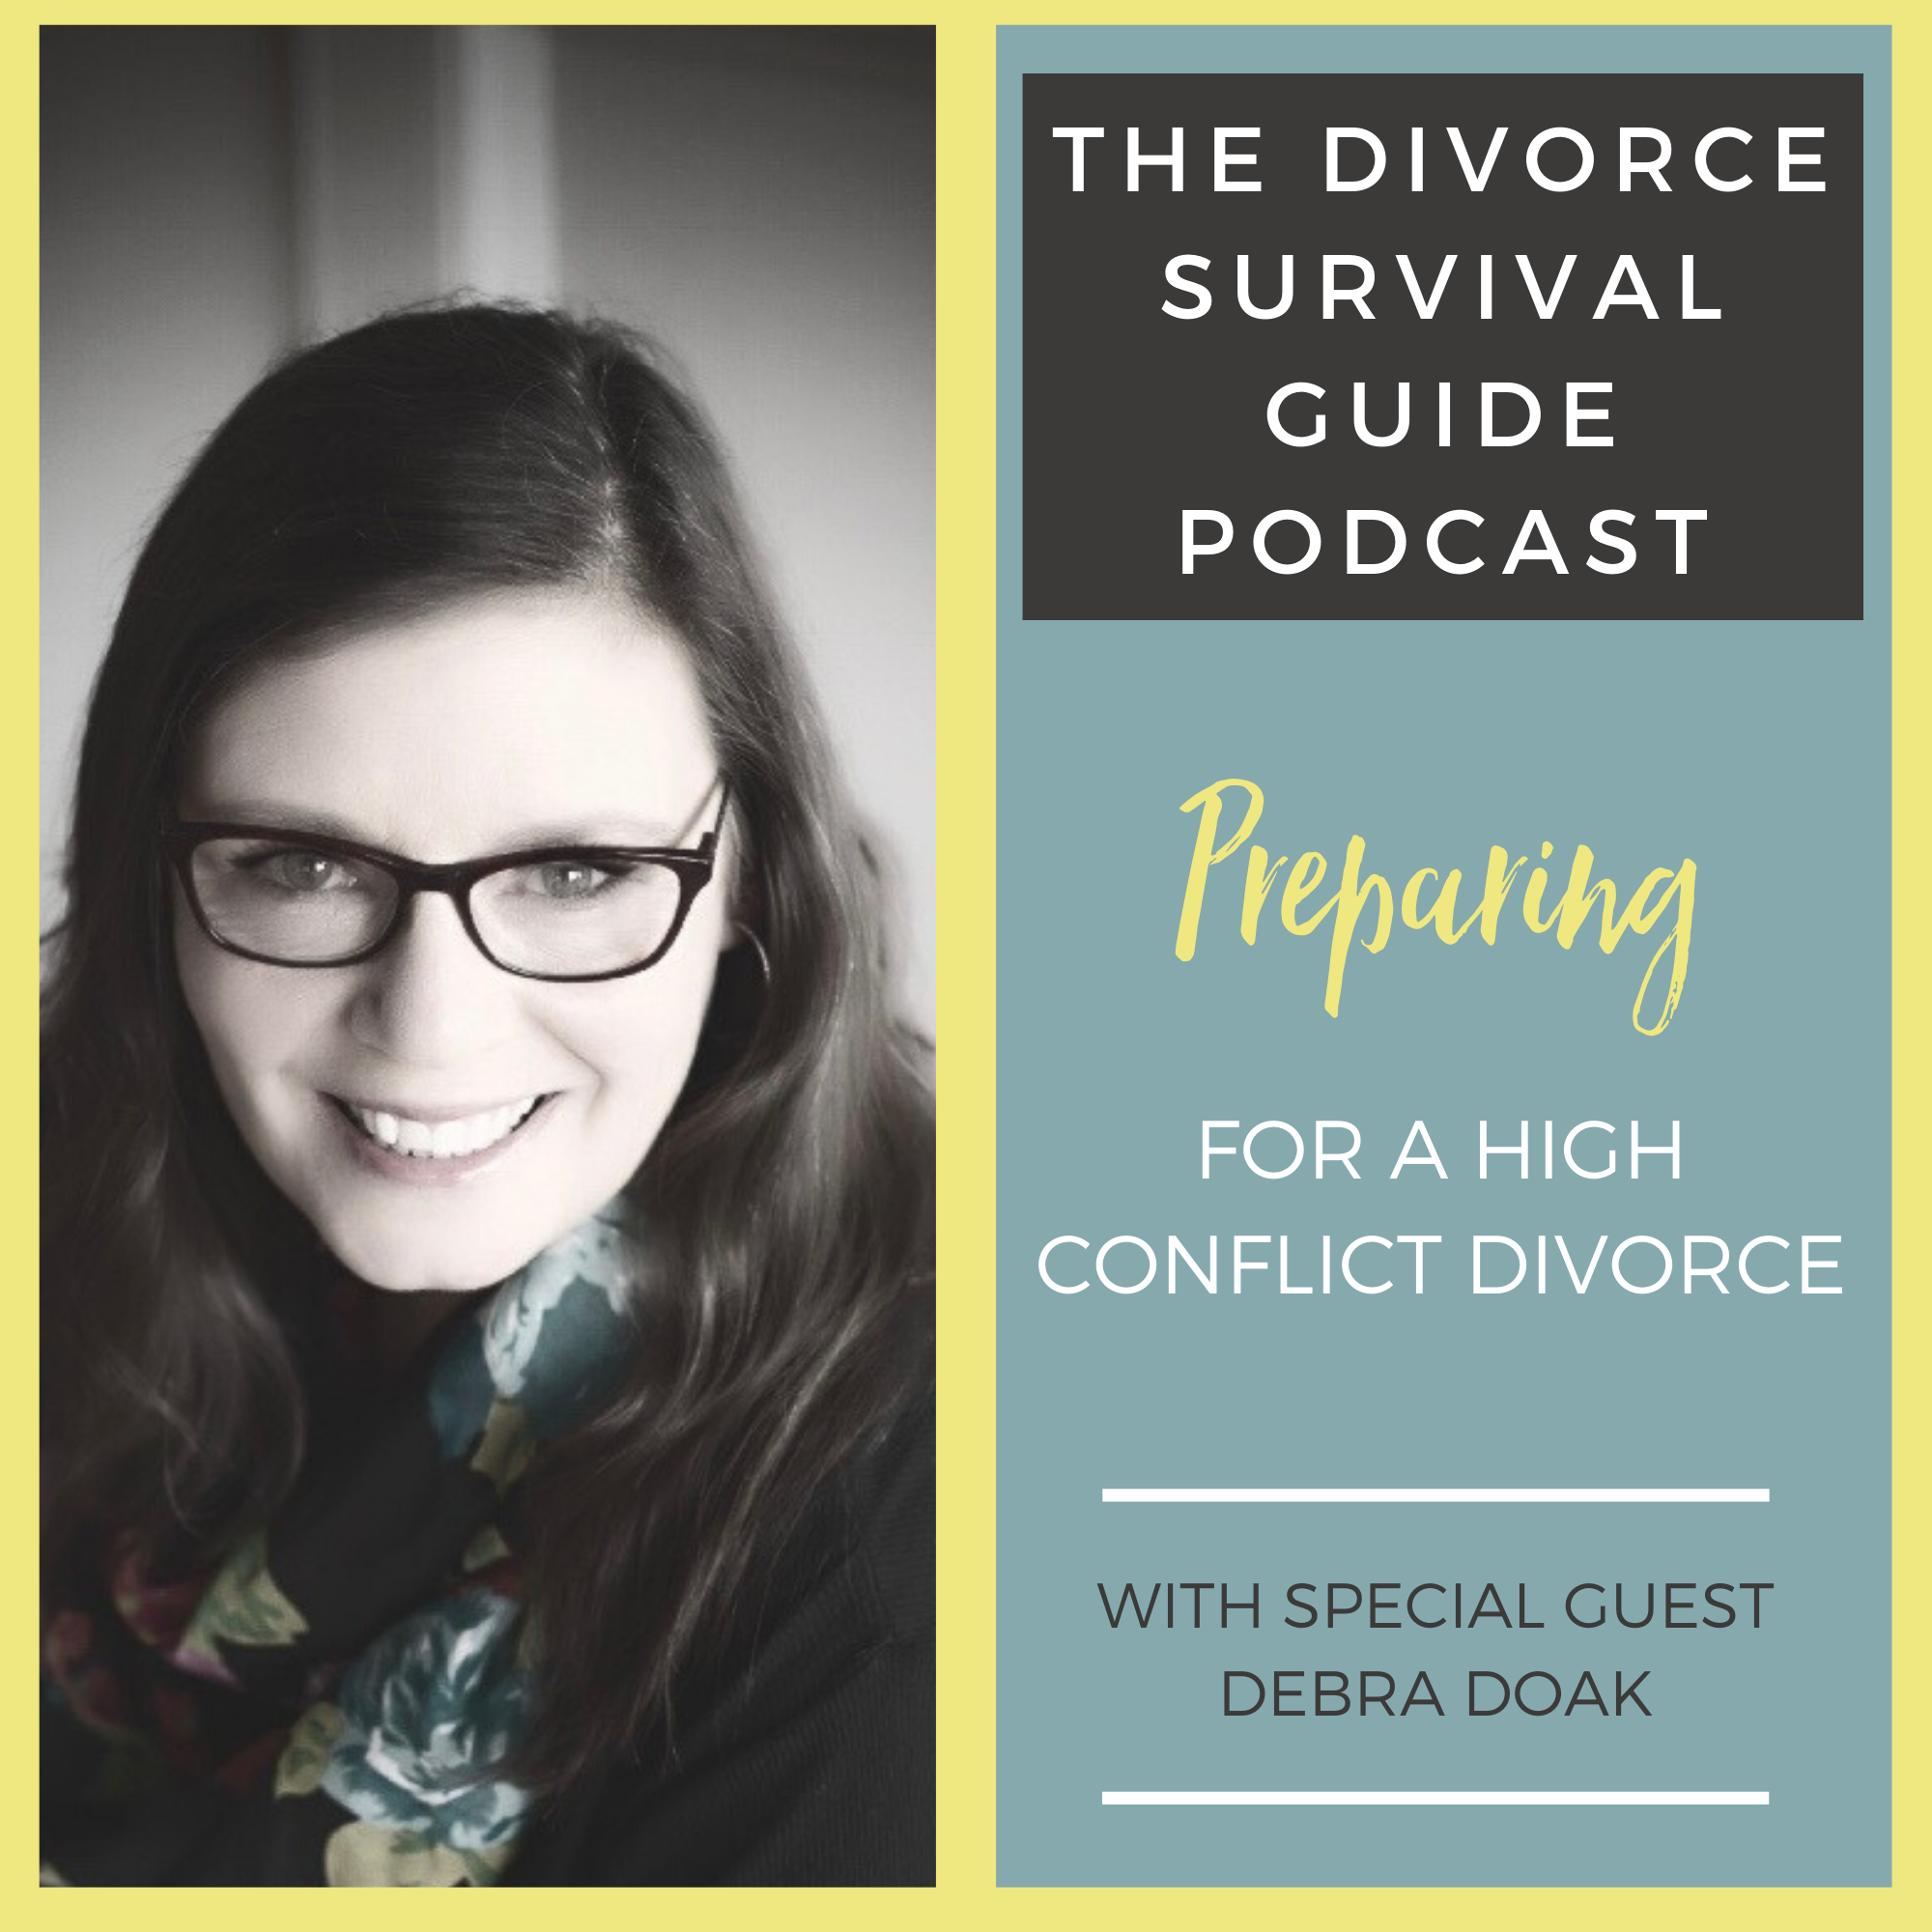 The Divorce Survival Guide Podcast - Preparing for a High Conflict Divorce with Debra Doak